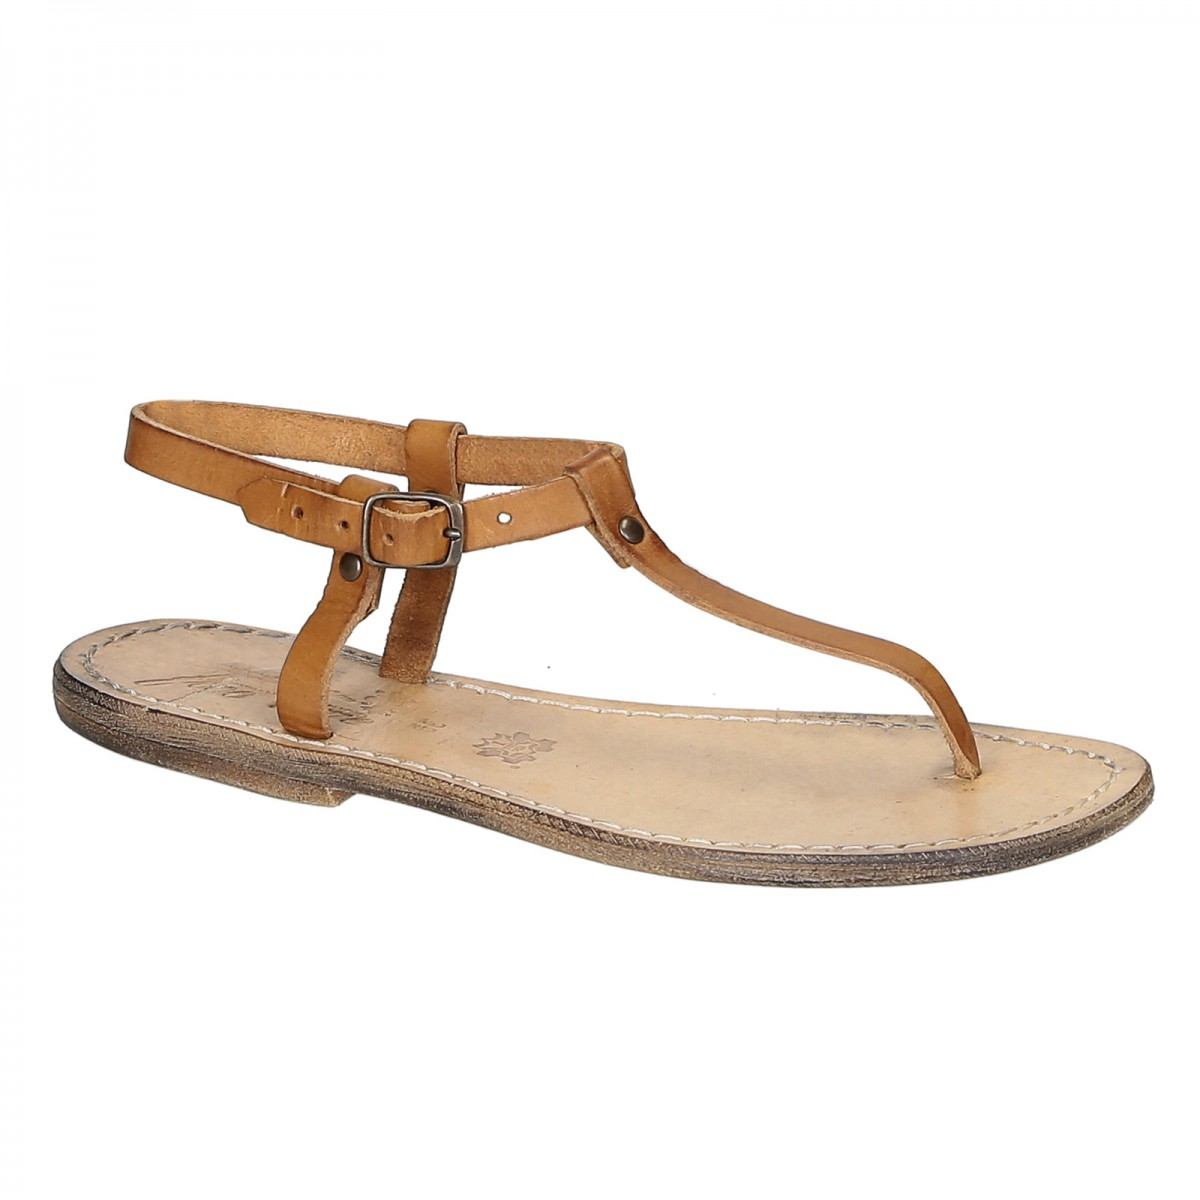 546106a36ab T-strap thong sandals in tan vintage Leather handmade in Italy. Loading zoom